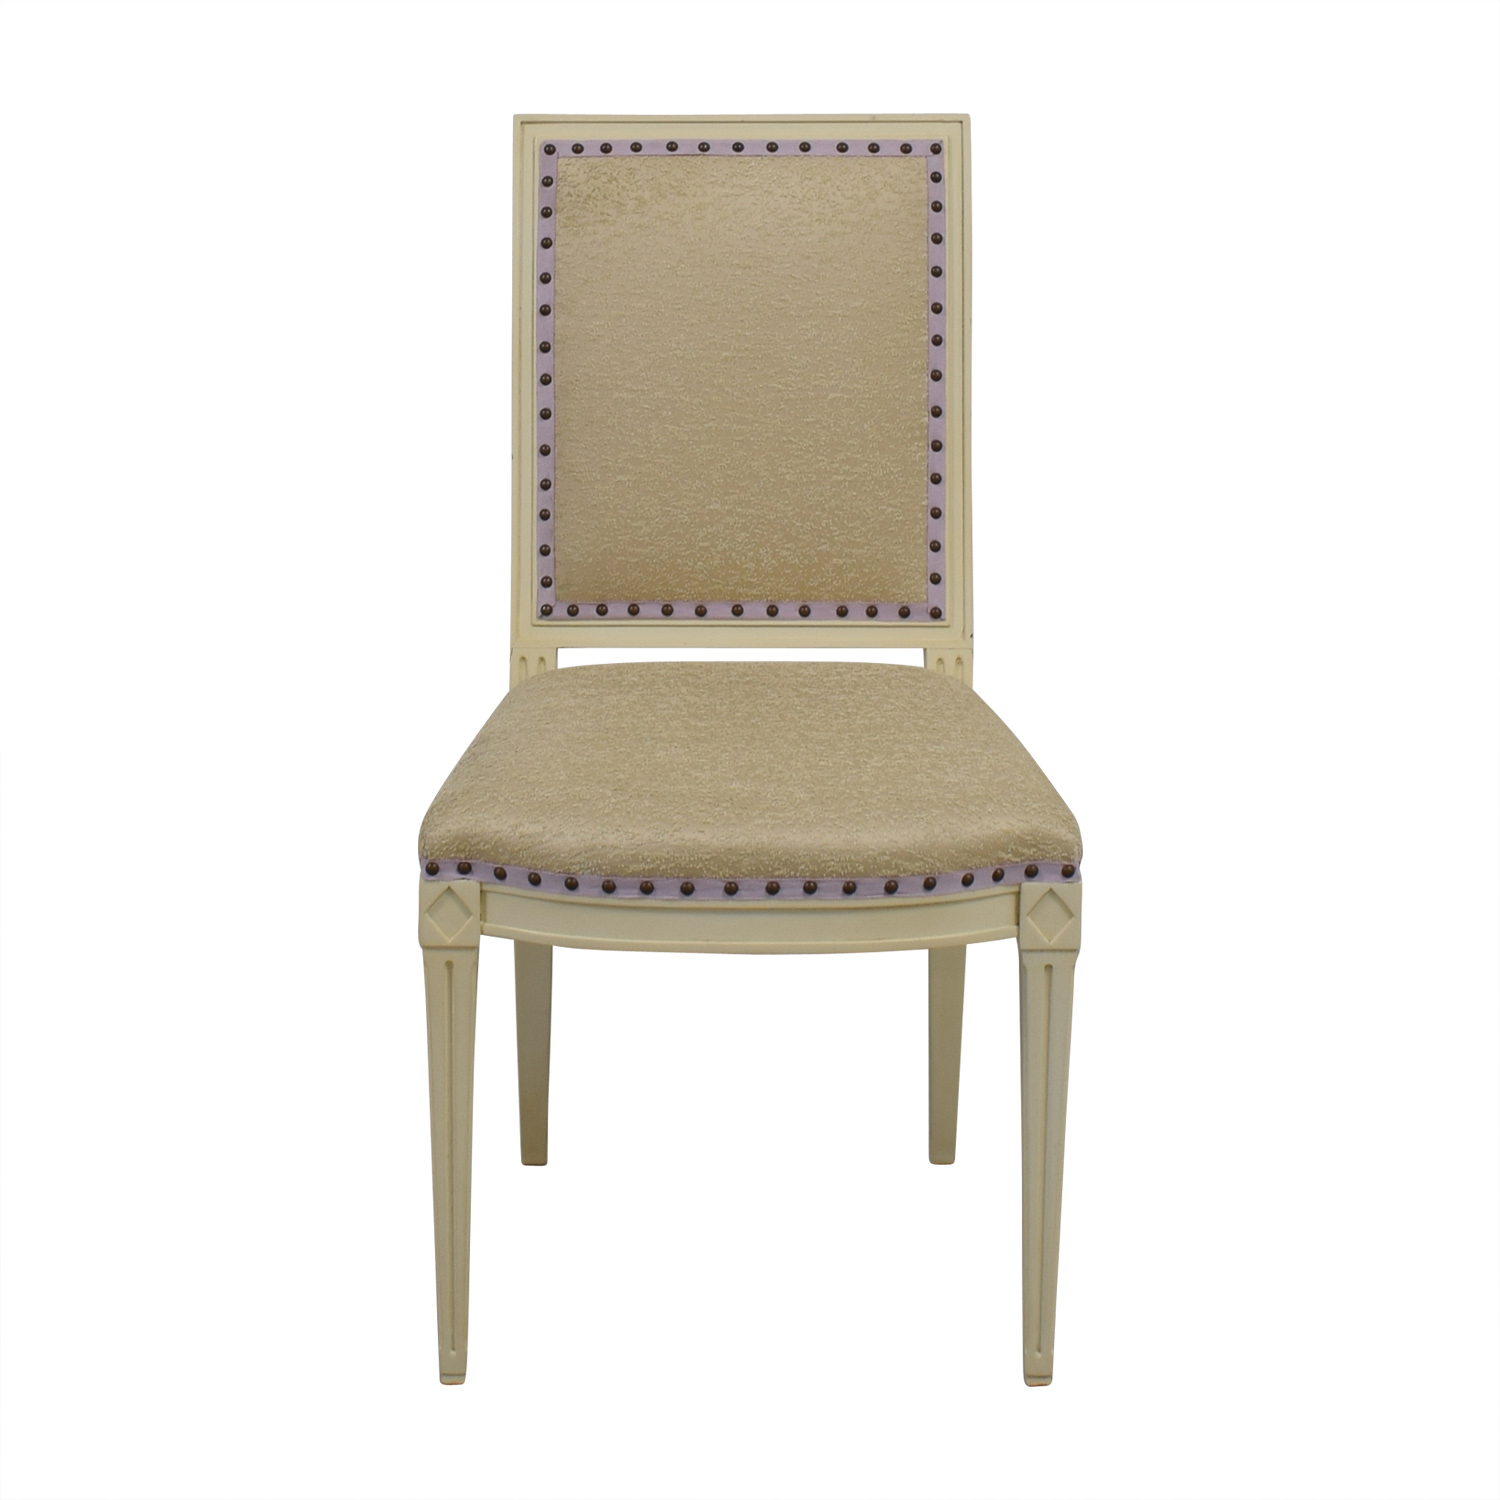 Custom Nailhead Upholstered Desk Chair